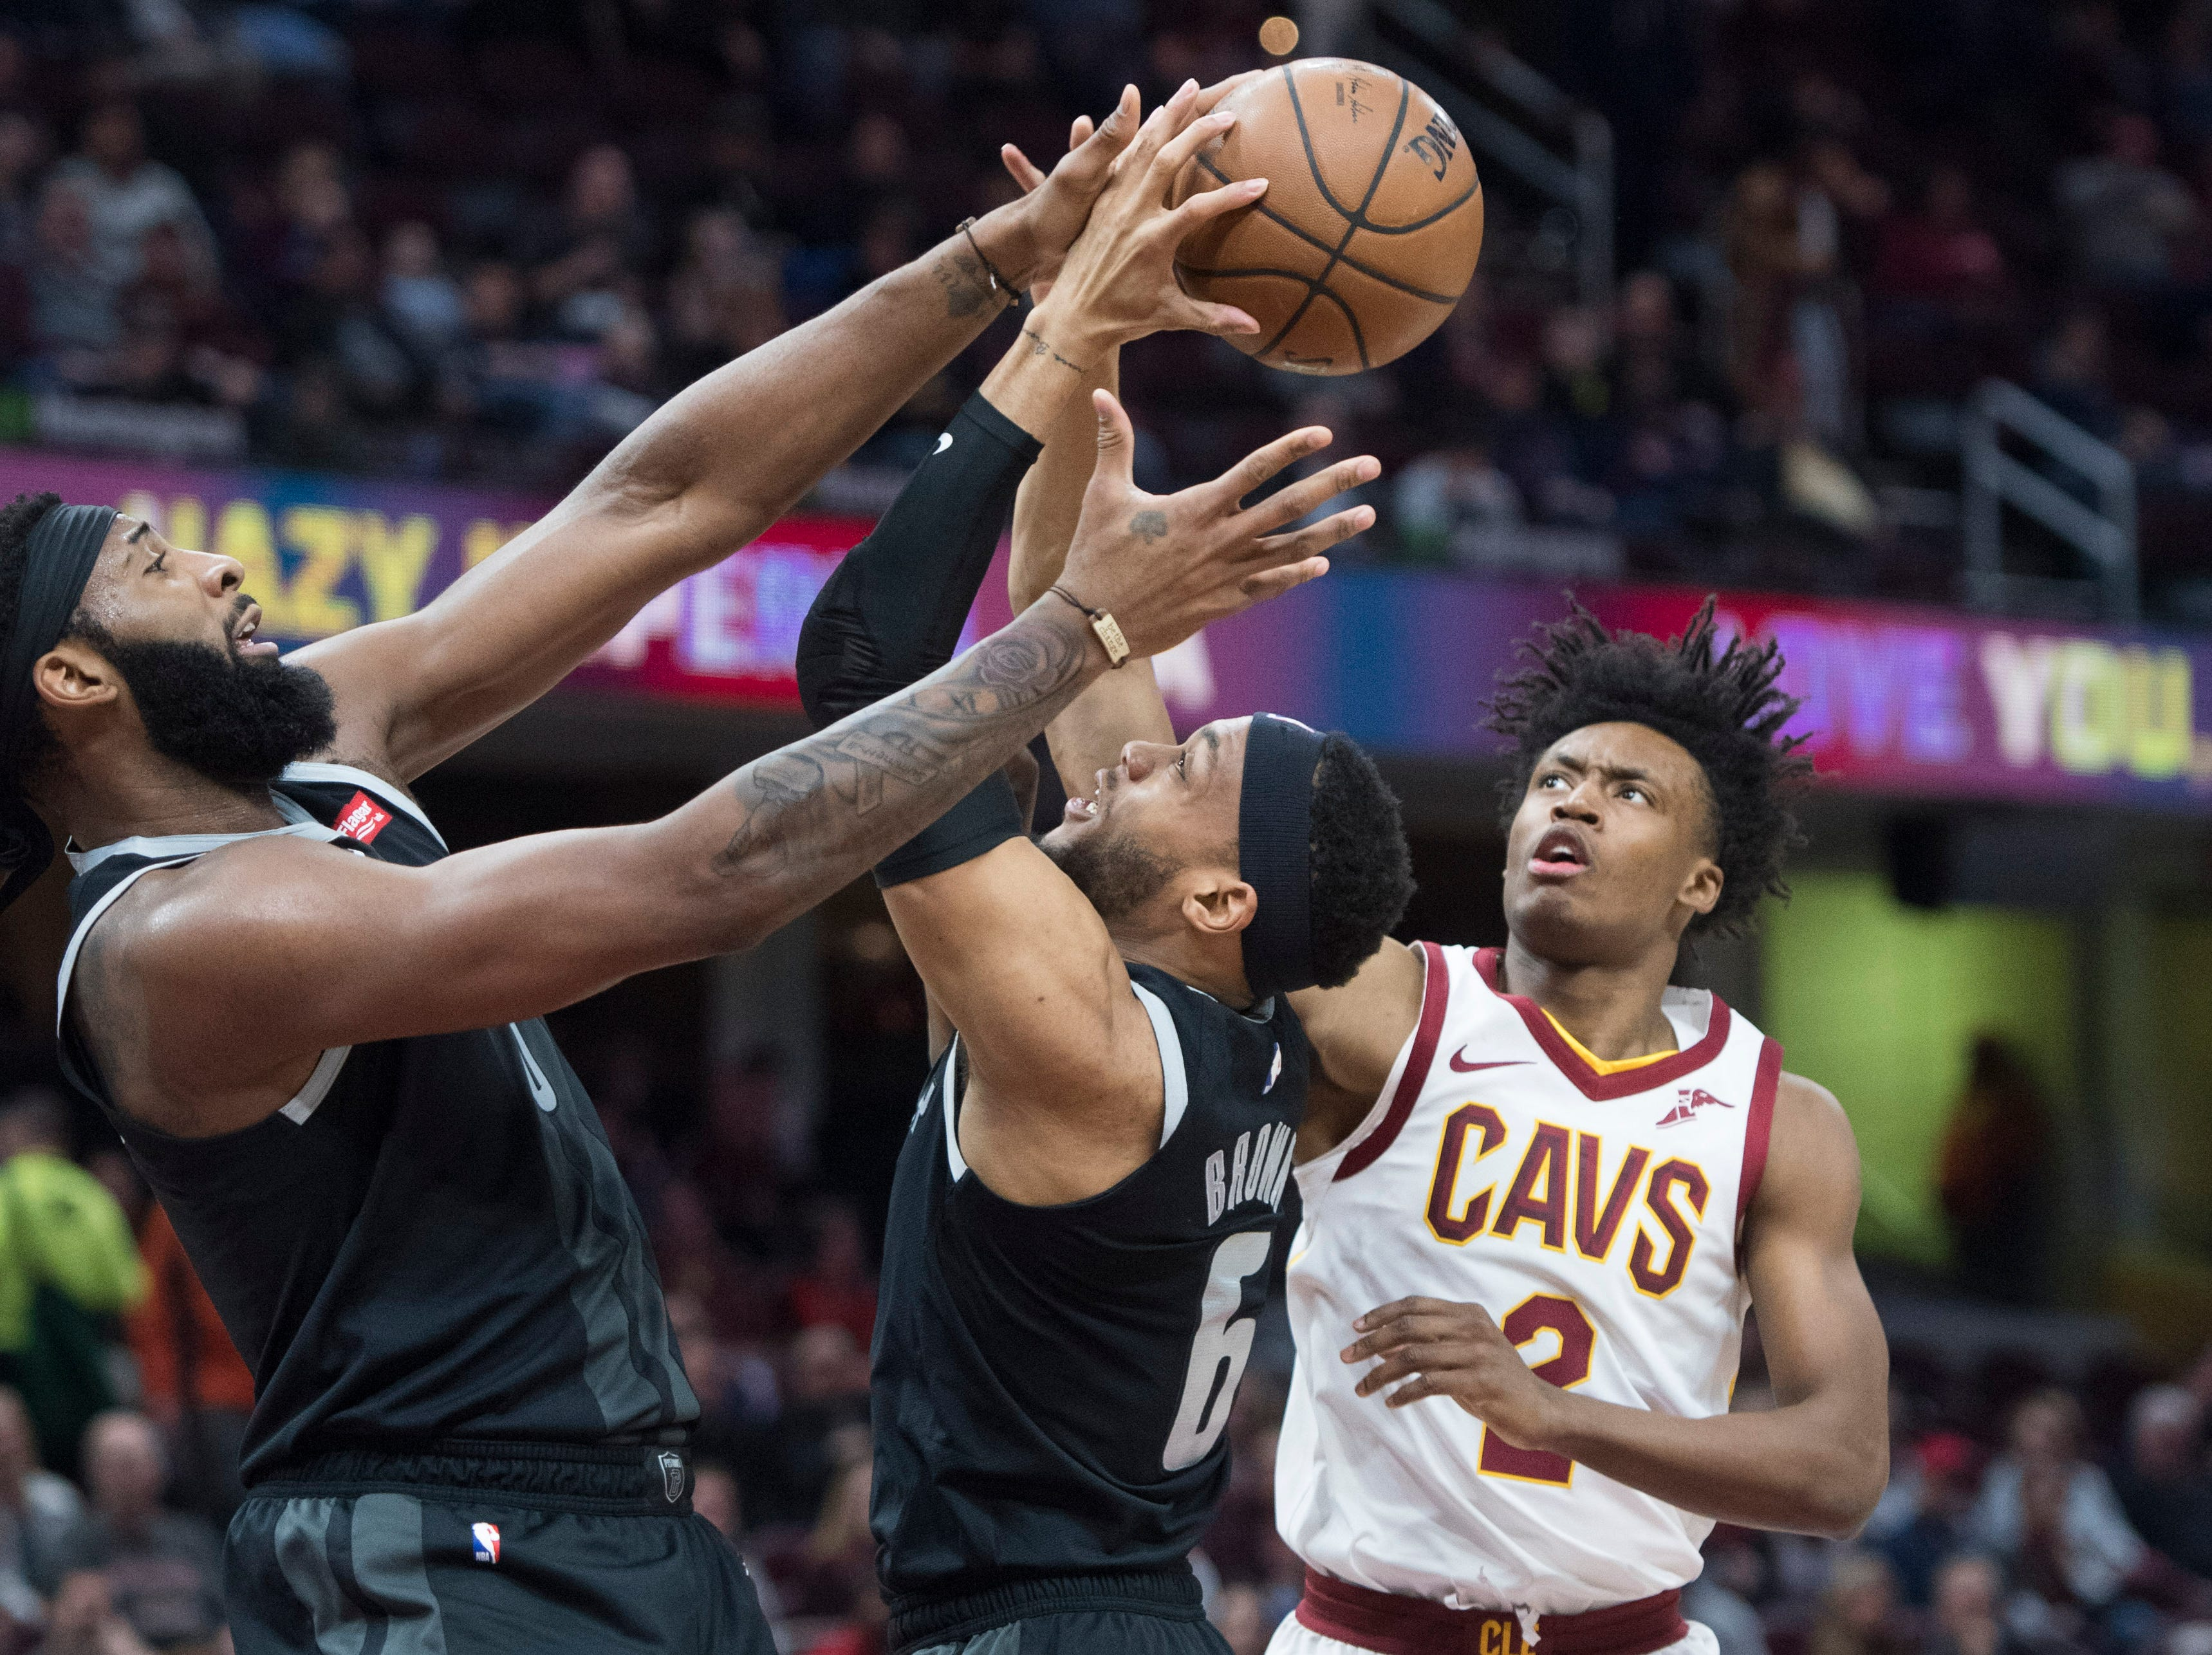 Detroit Pistons' center Andre Drummond, left, and guard Bruce Brown, center, go for a rebound against Cleveland Cavaliers' guard Collin Sexton in the first half of an NBA basketball game,